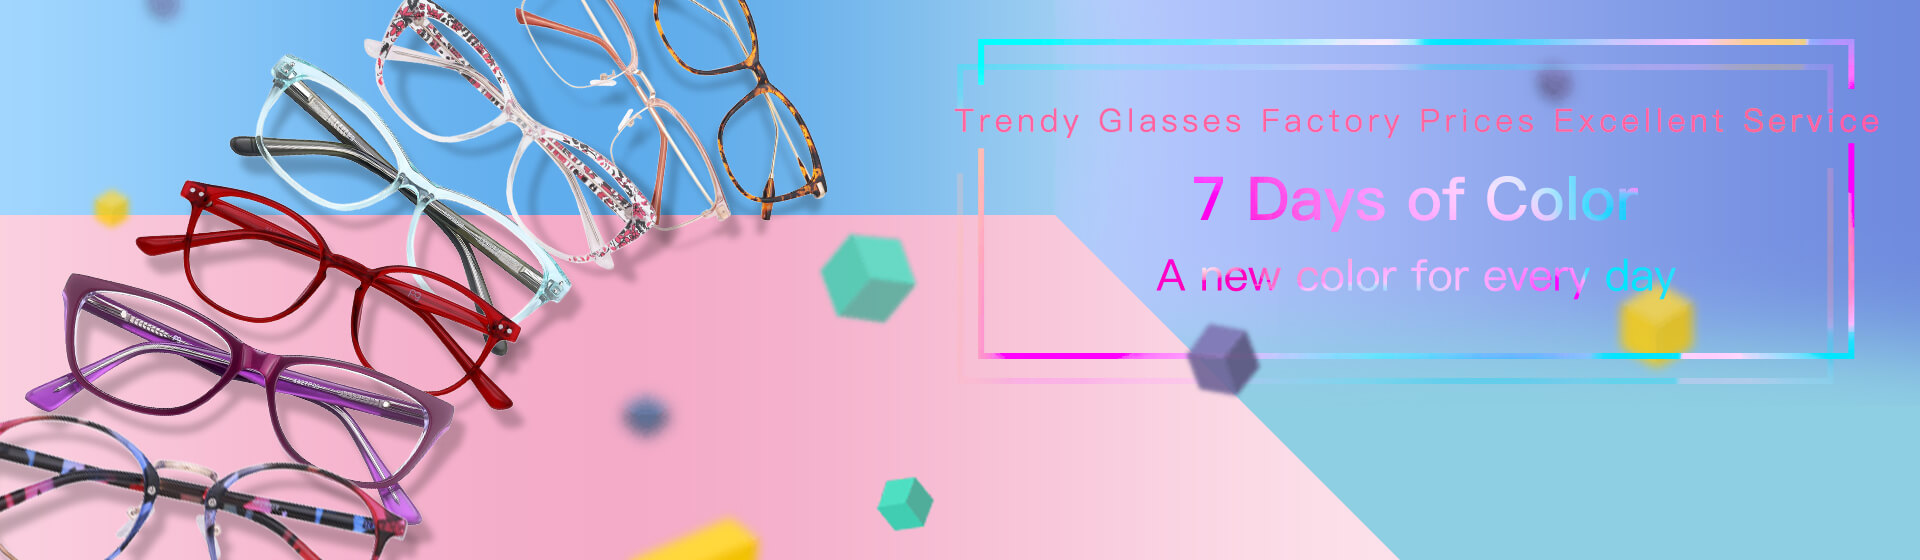 Trendy Glasses Factory Prices Excellent Service A new color for every day